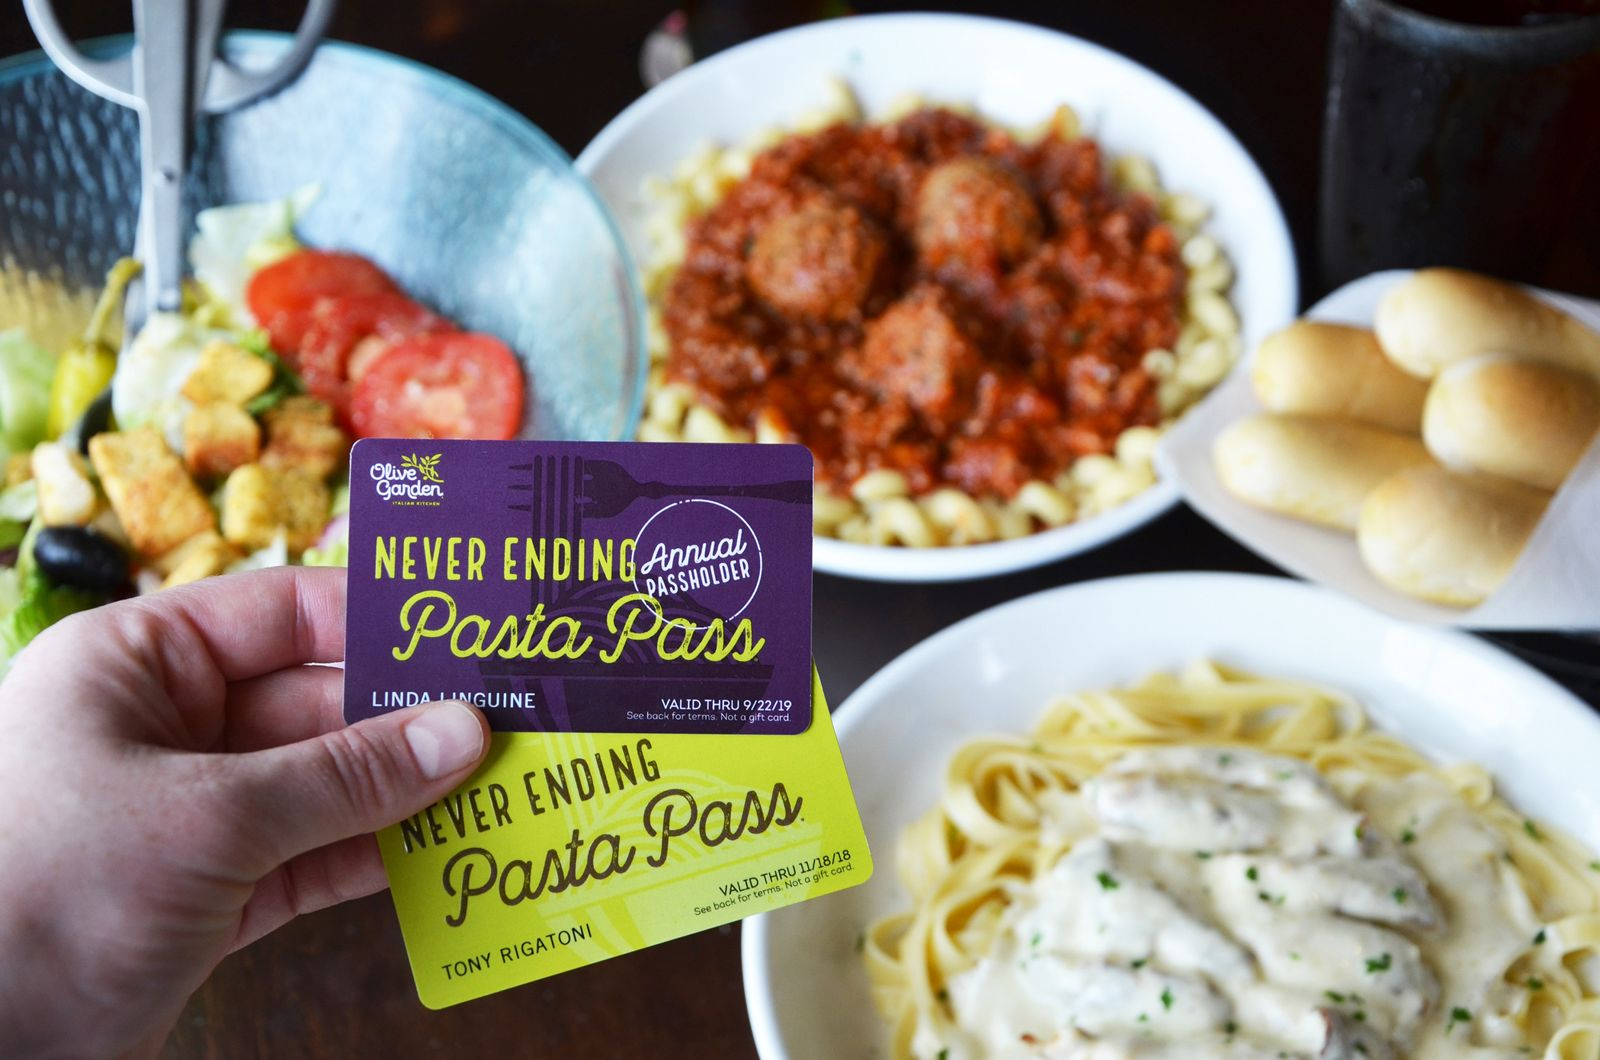 Olive Garden Introduces First-Of-Its Kind 'Annual Pasta Pass' That Extends Never Ending Pasta Benefits Year-Round